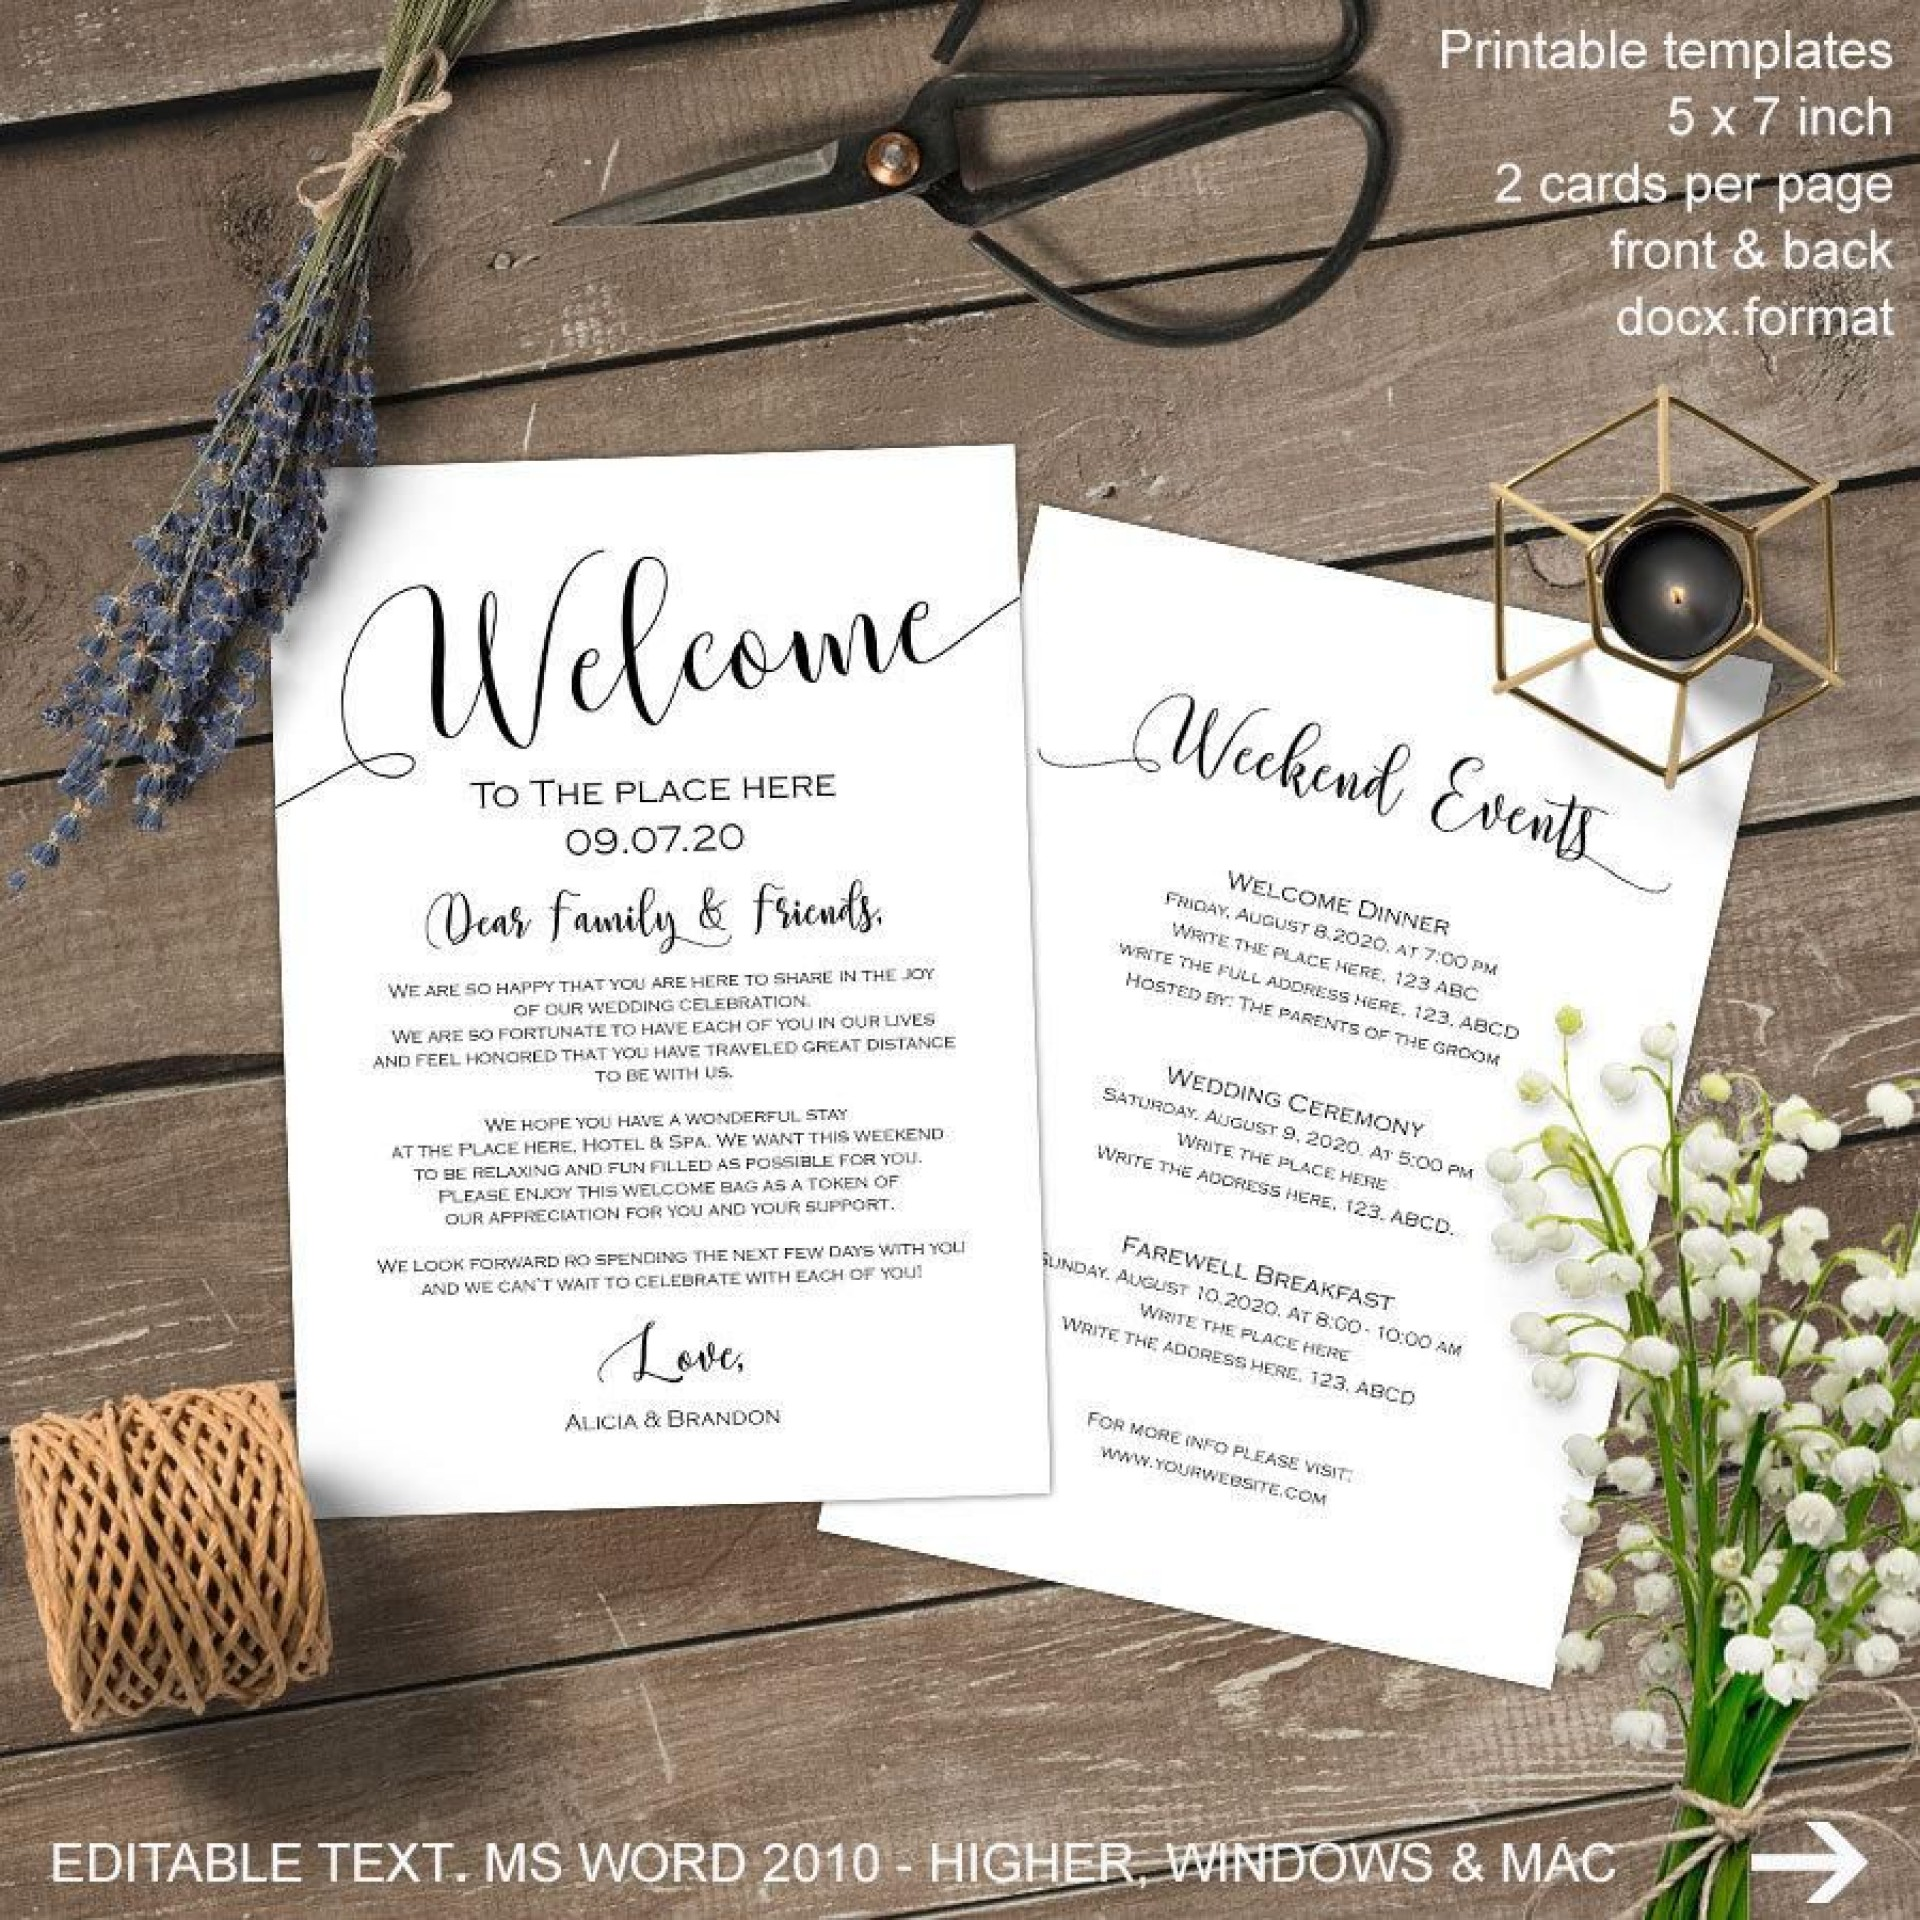 009 Rare Wedding Welcome Bag Letter Template Image  Free1920